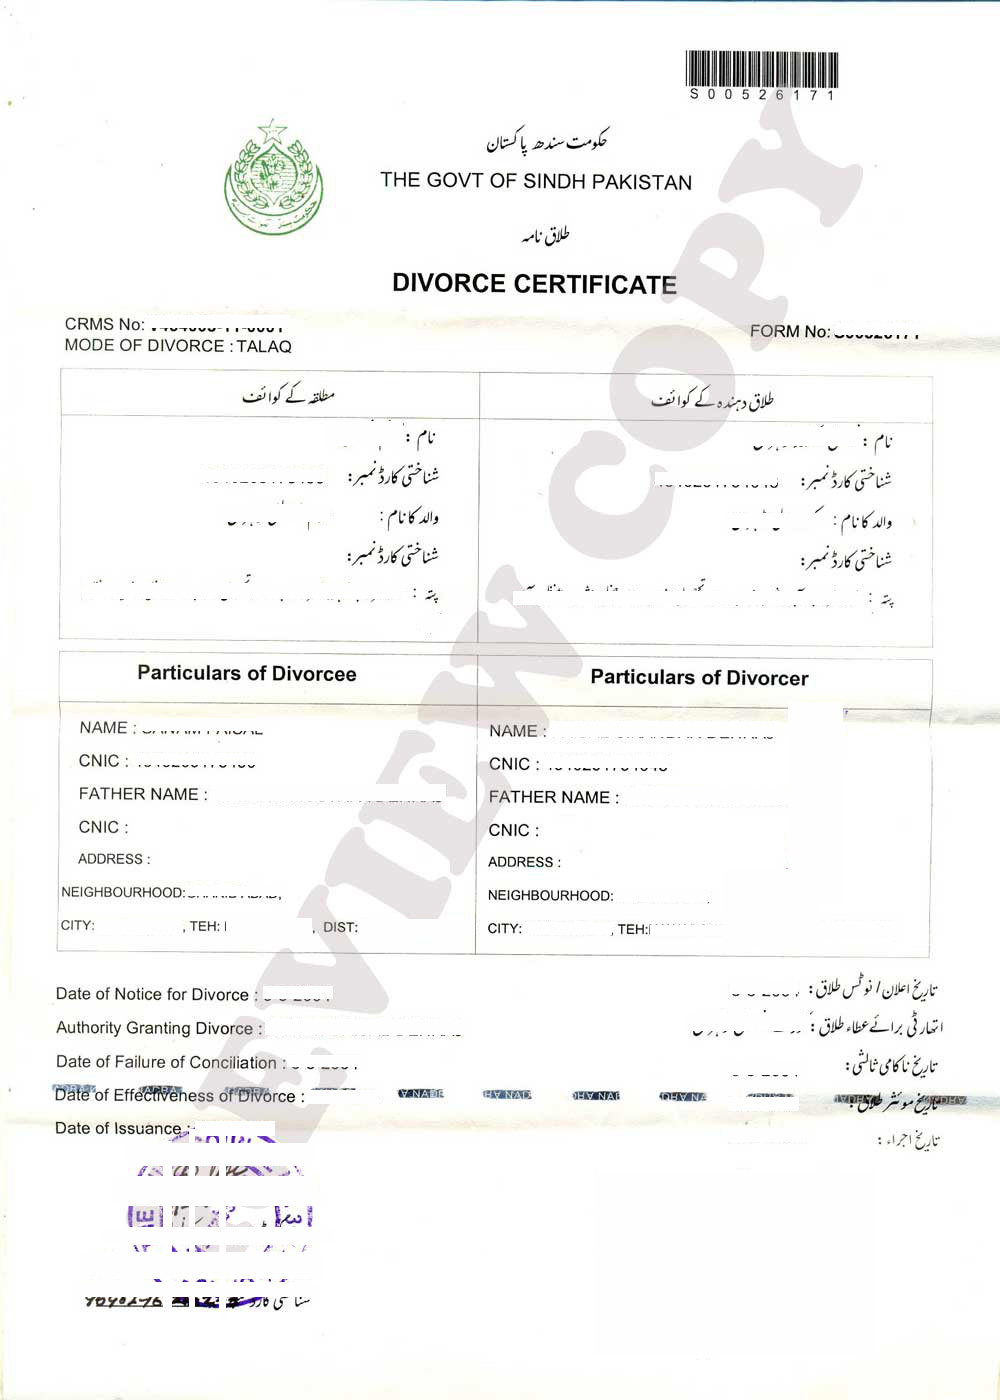 Certificate issuance business point travels tours divoce certificate sample pakistan169243 1 aiddatafo Image collections